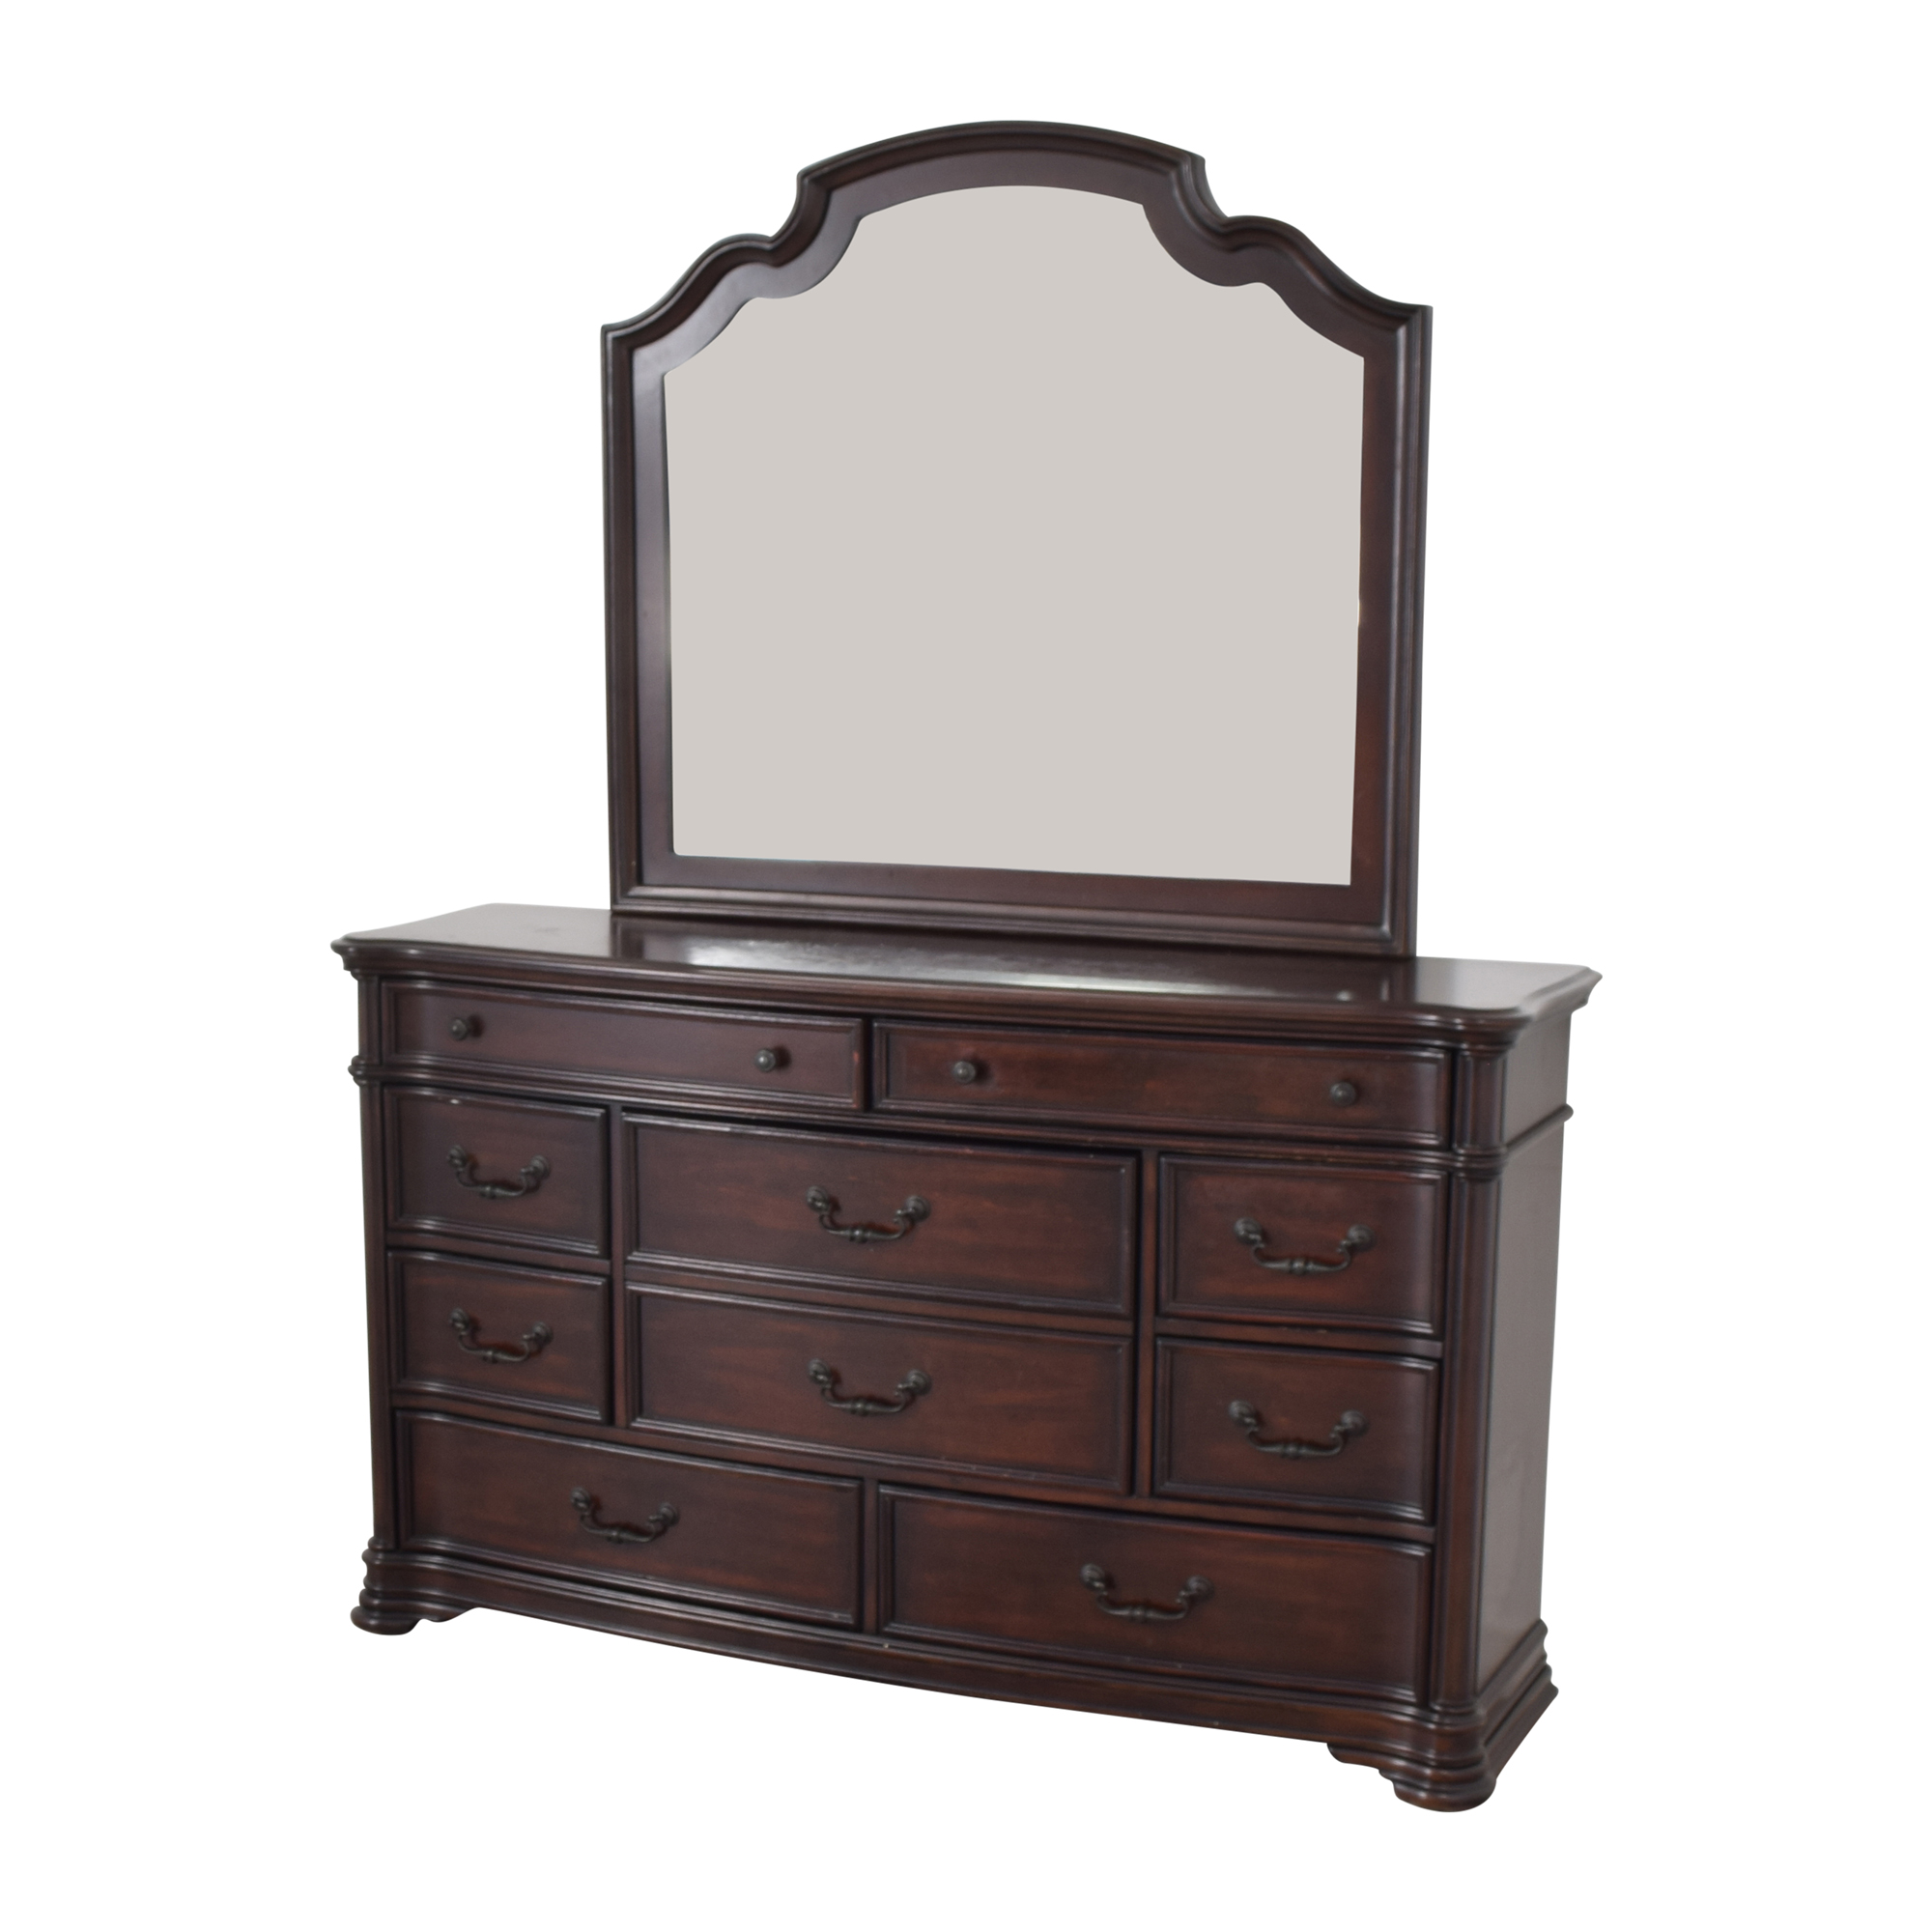 Ten Drawer Dresser and Mirror used